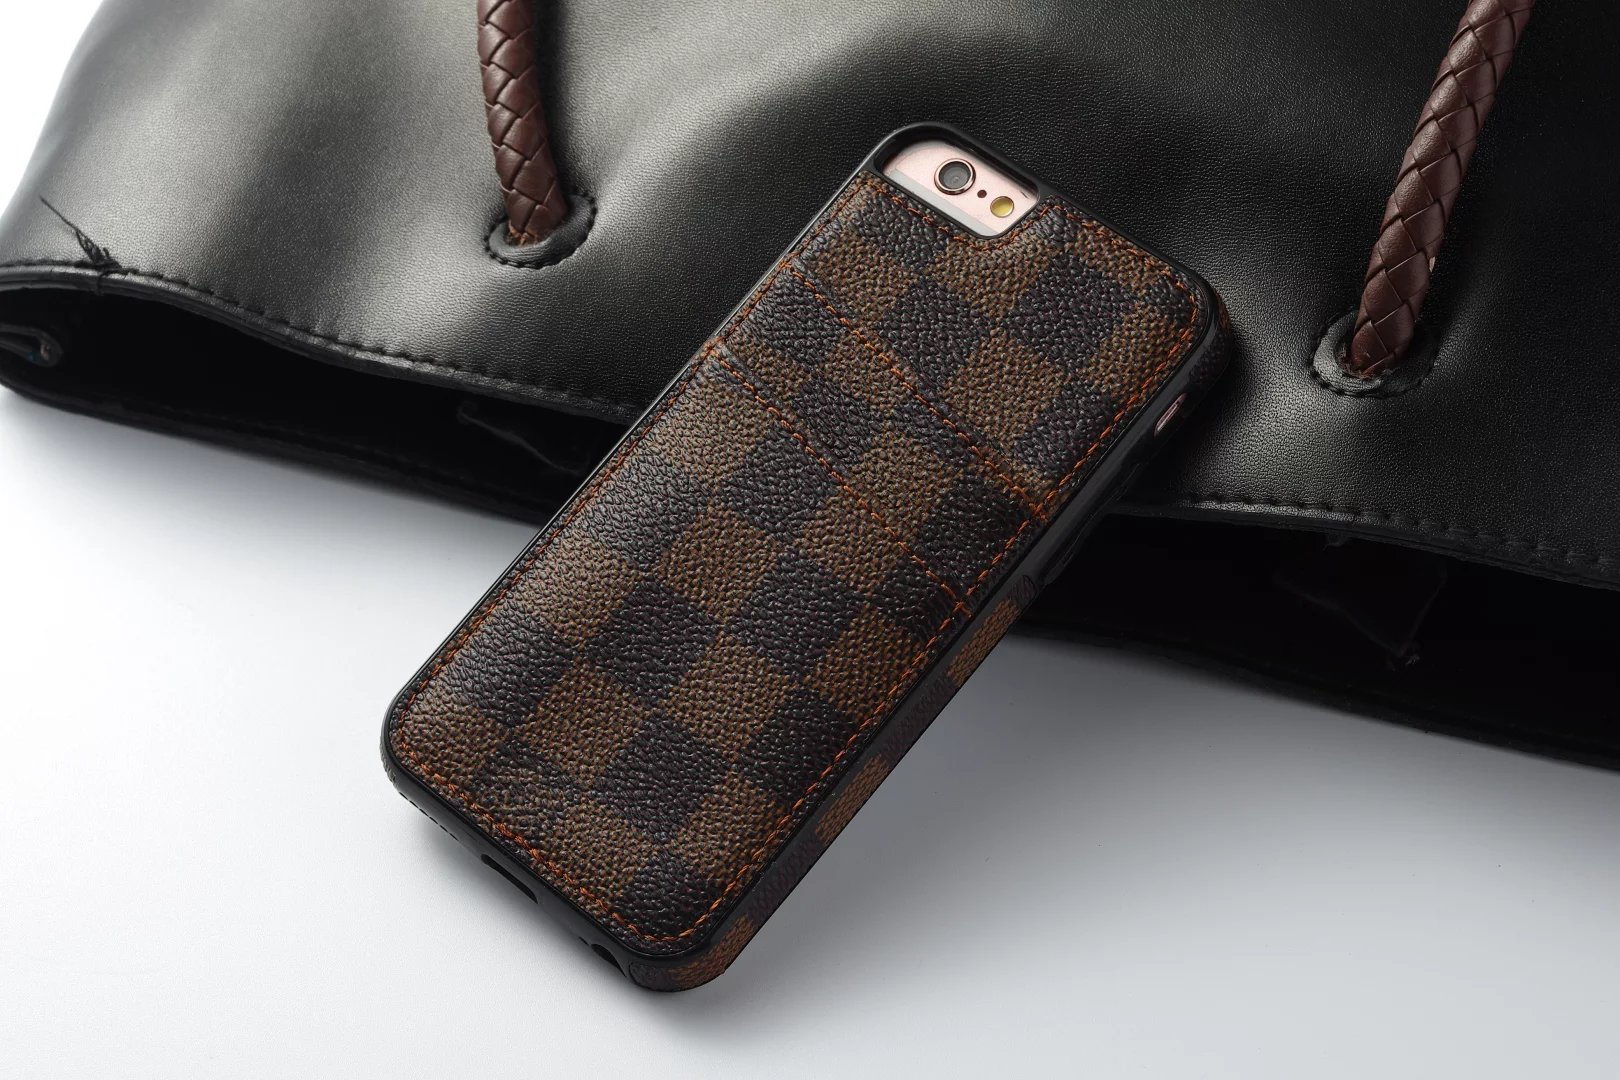 iphone silikonhülle iphone case gestalten Louis Vuitton iphone6 plus hülle zubehör für iphone 6 Plus phone ca6 elber gestalten cover handy 6lbst gestalten outdoor schutzhülle iphone 6 Plus iphone 6 Plus hülle pink iphone 6 Plus cover kaufen